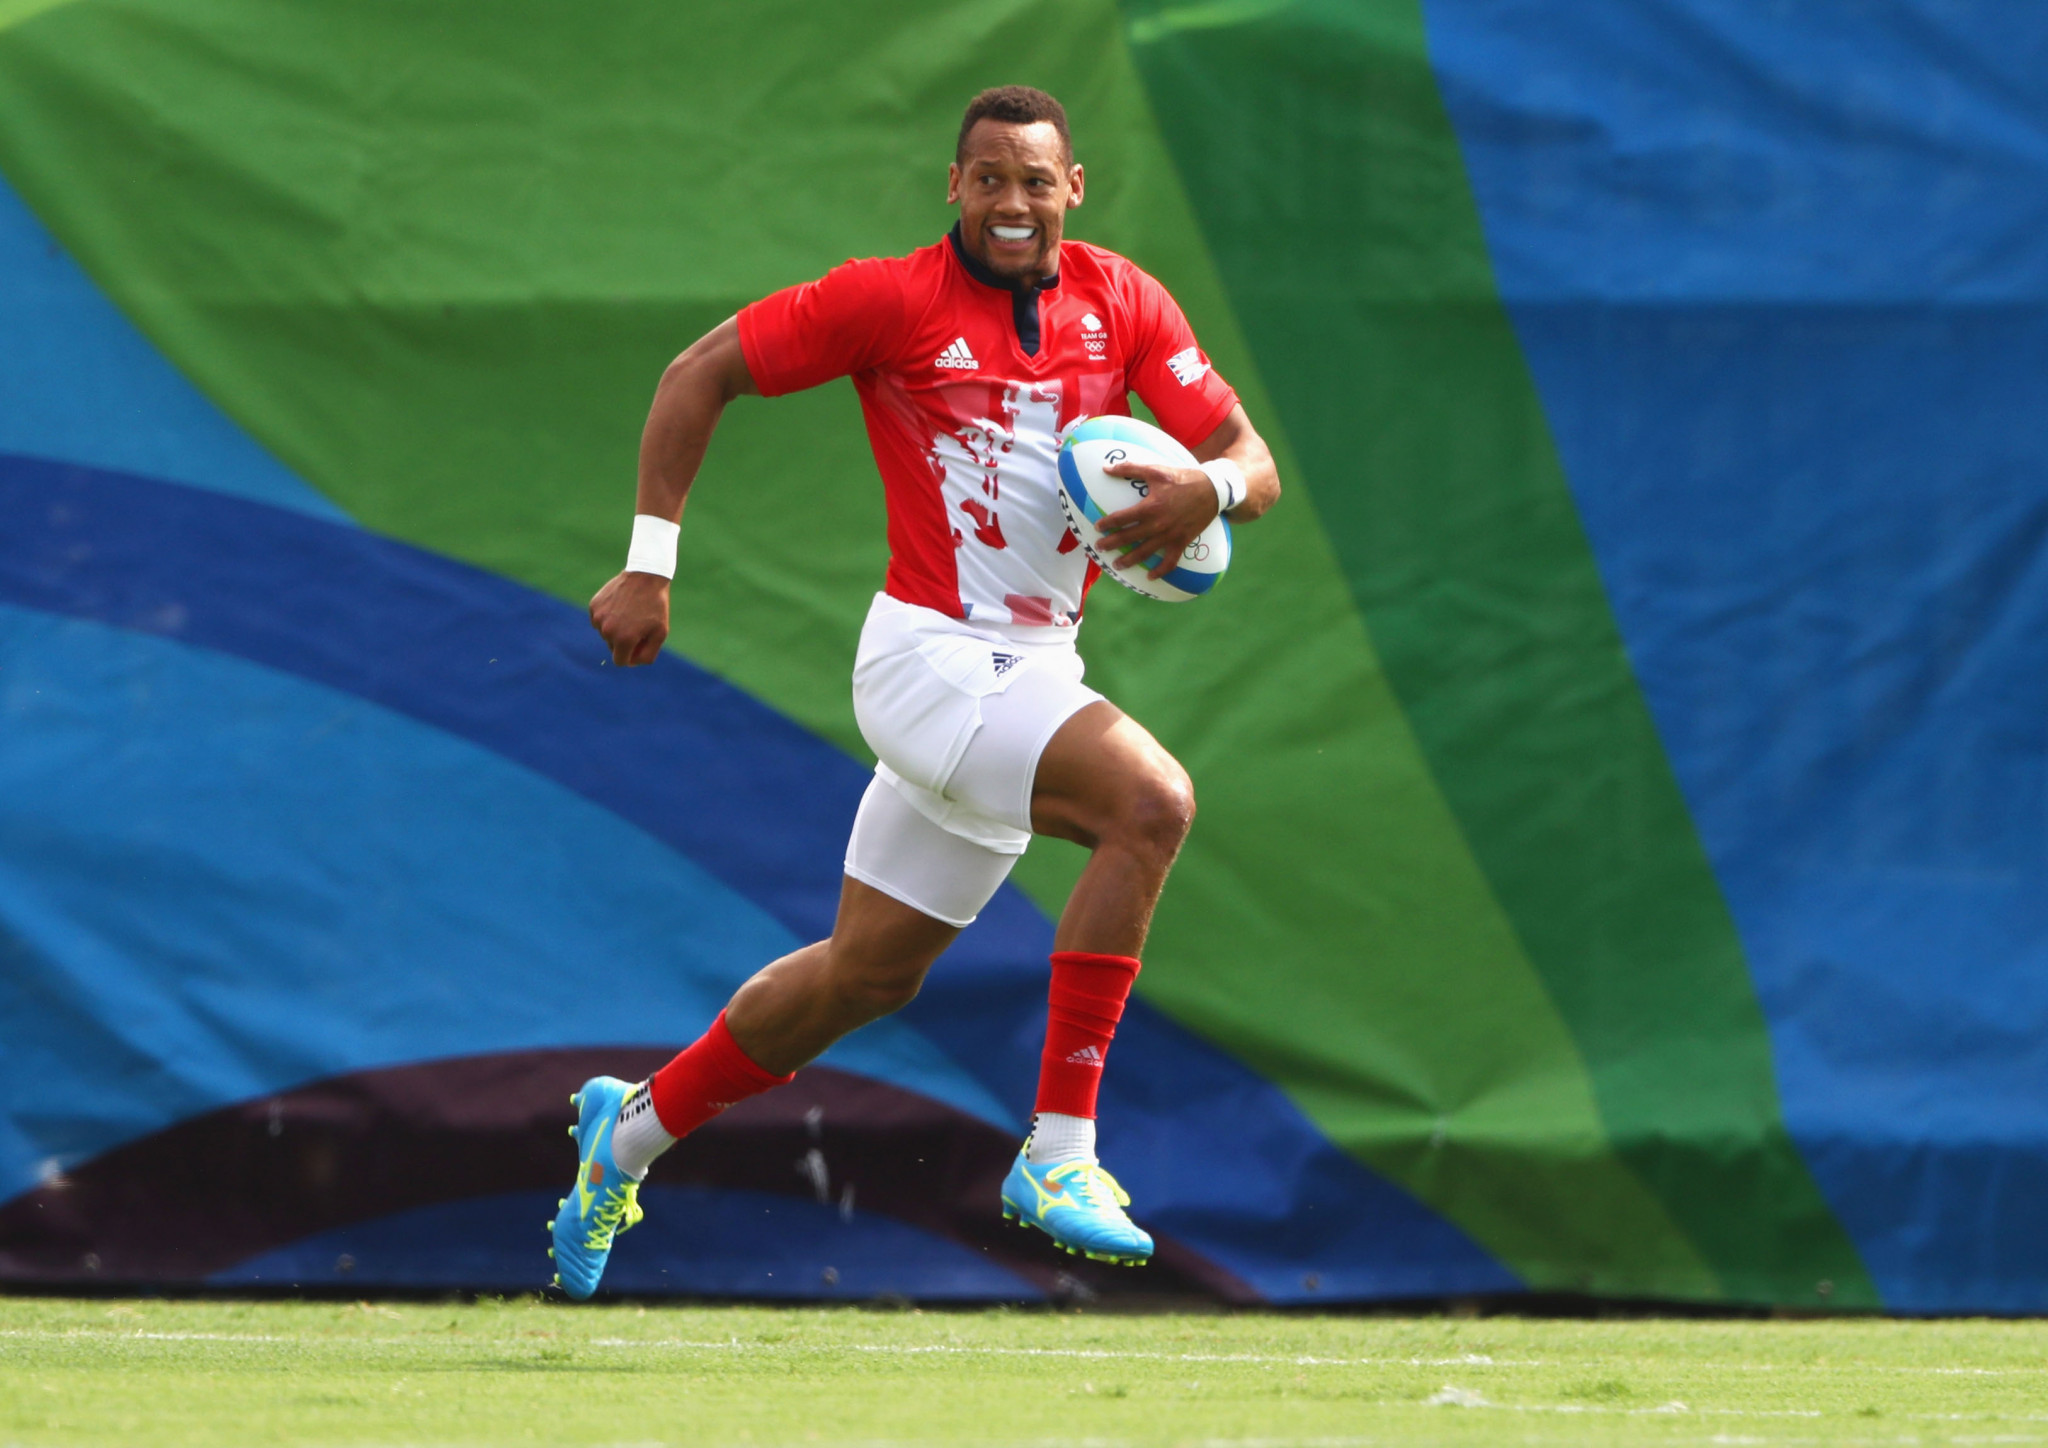 Dan Norton has says Brtain's men's rugby sevens team could self-fund Tokyo 2020 preparations ©Getty Images